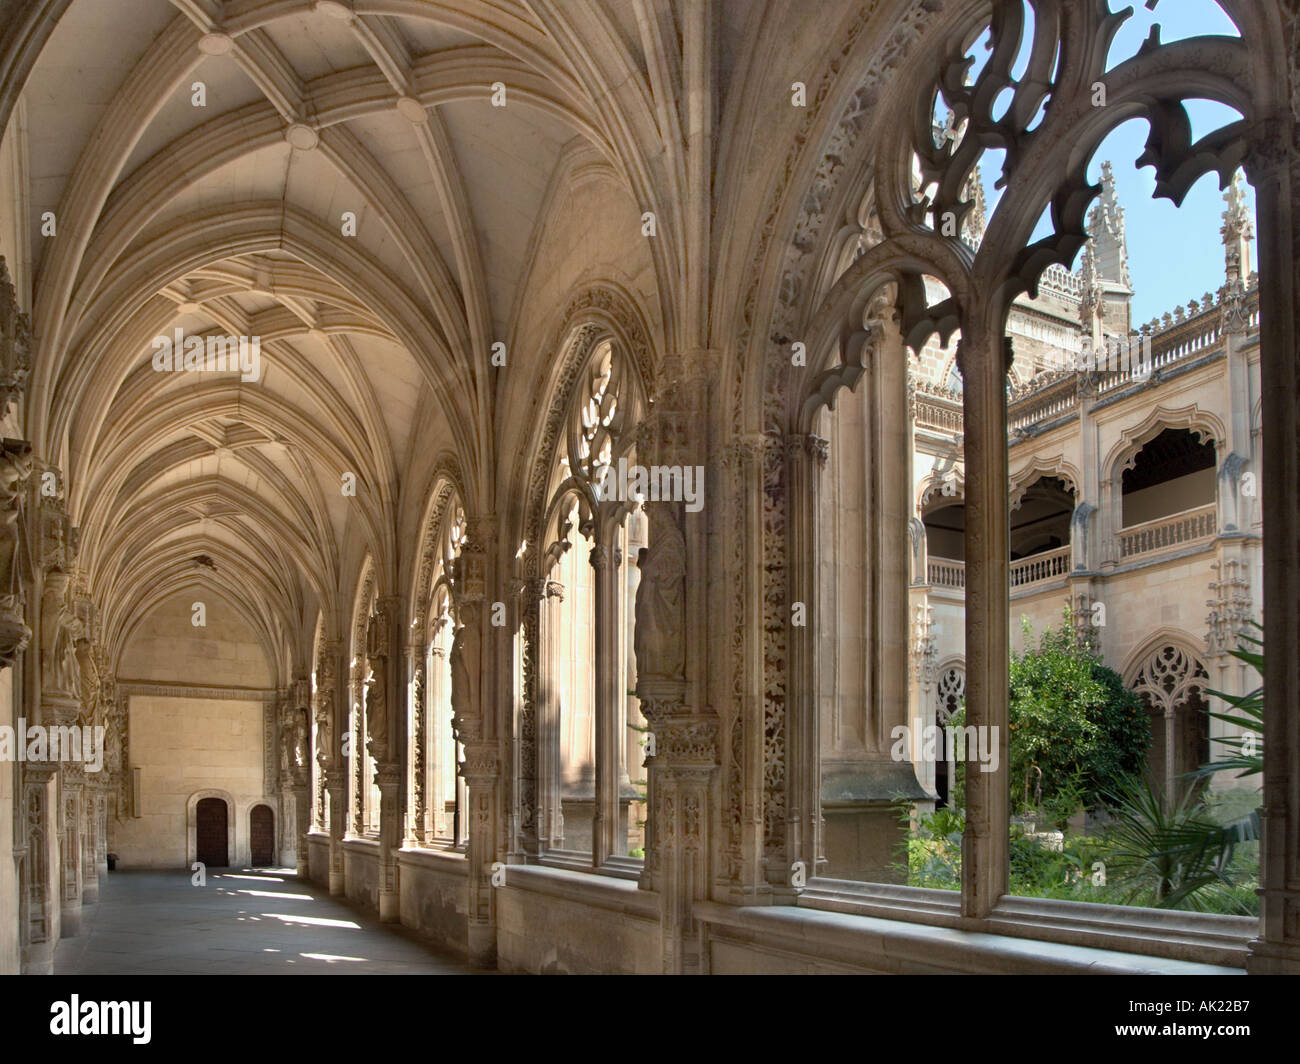 Cloisters in the Church of San Juan de los Reyes, Toledo, Castilla-La-Mancha, Spain - Stock Image